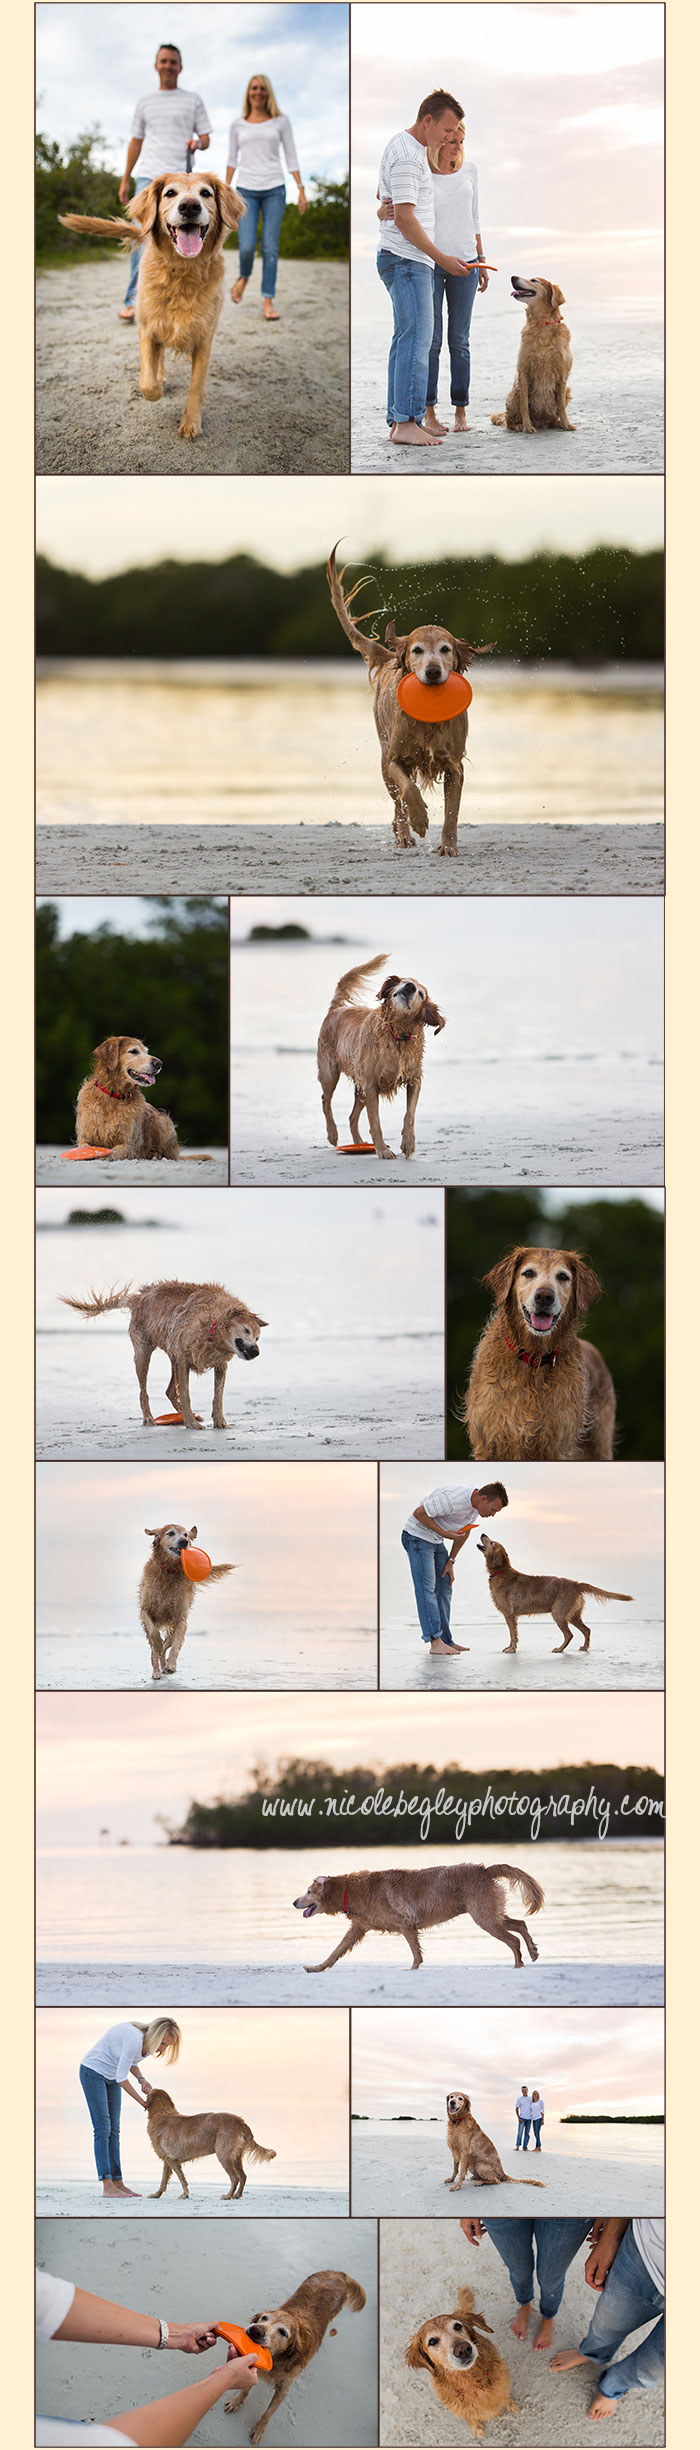 Dog Photography On A Beach Pet Lifestyle Photography South West